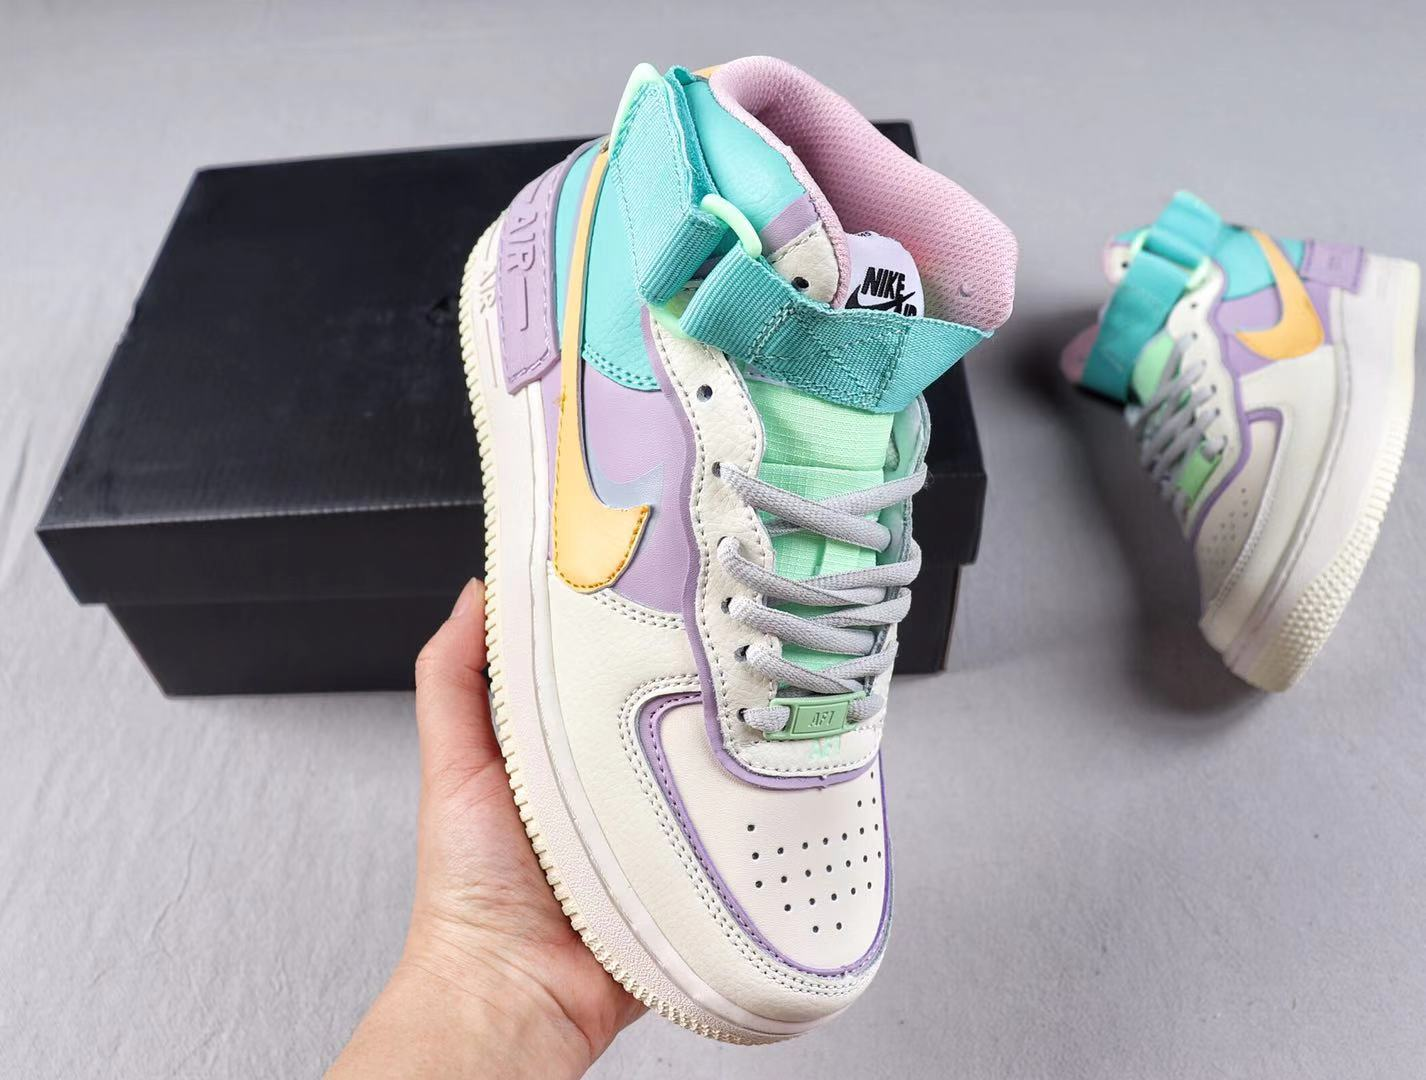 Nike Wmns Air Force 1 Shadow AF1 White/Pink-Purple Sneakers Hot Selling